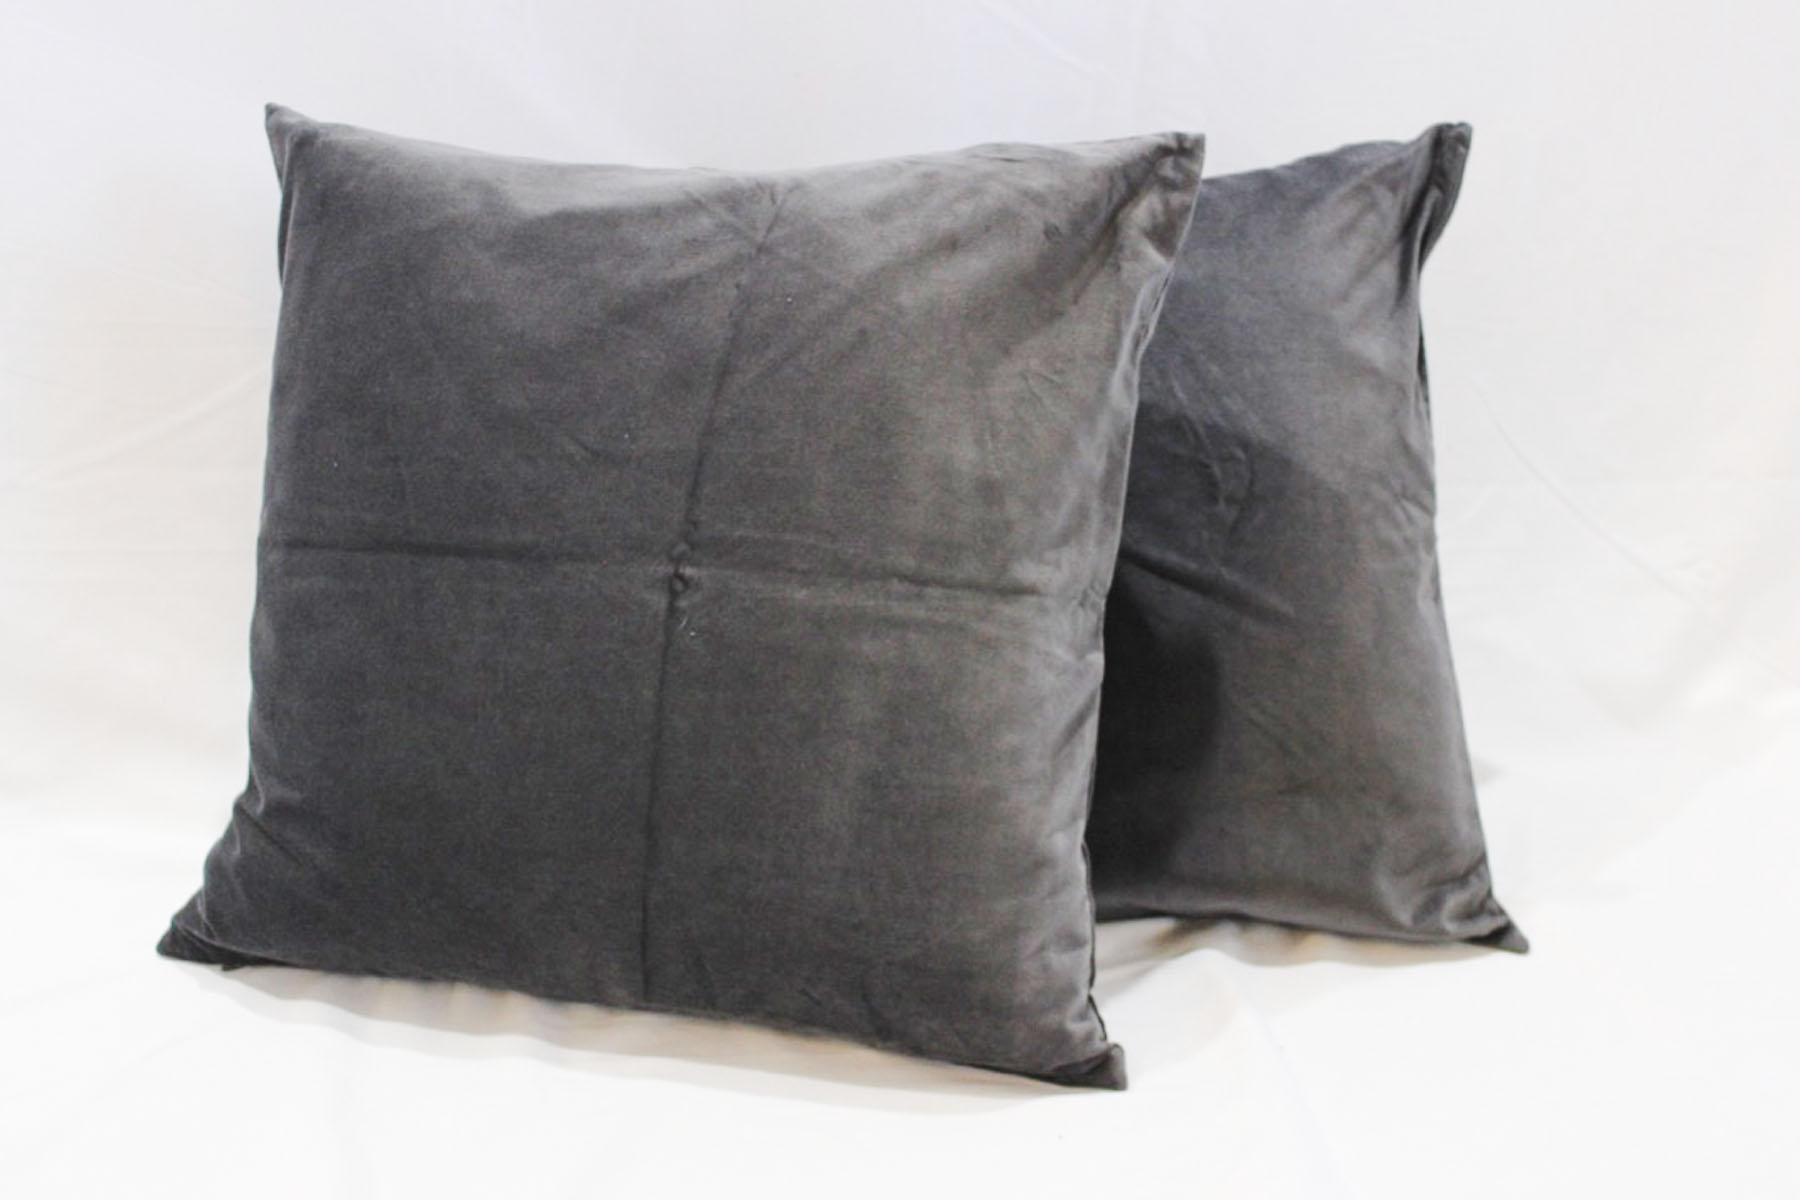 Gray Velvet Pillows - Scavenged Vintage Rentals